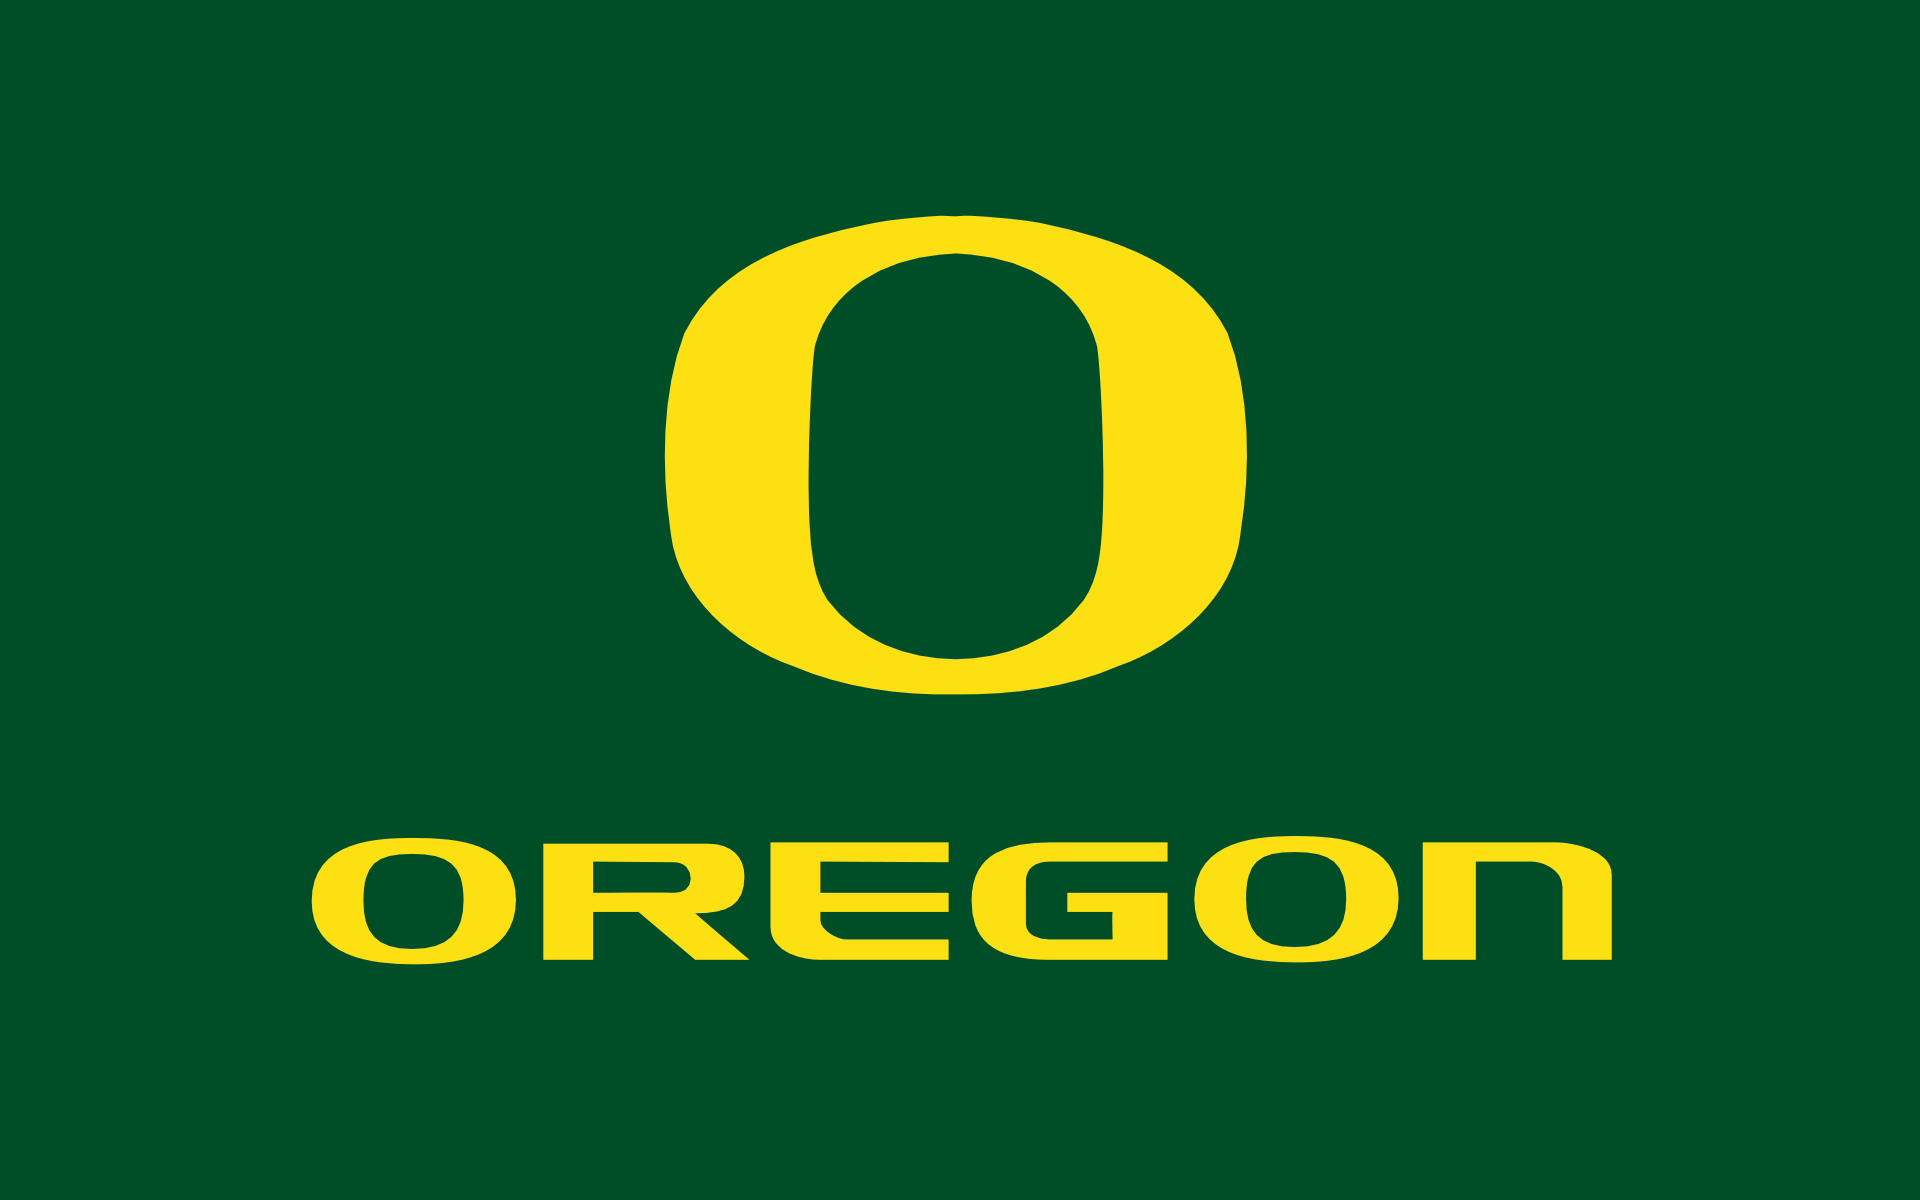 Oregon Football Wallpaper Hd Oregon Ducks Wallpapers Hd Free Download Pixelstalk Net